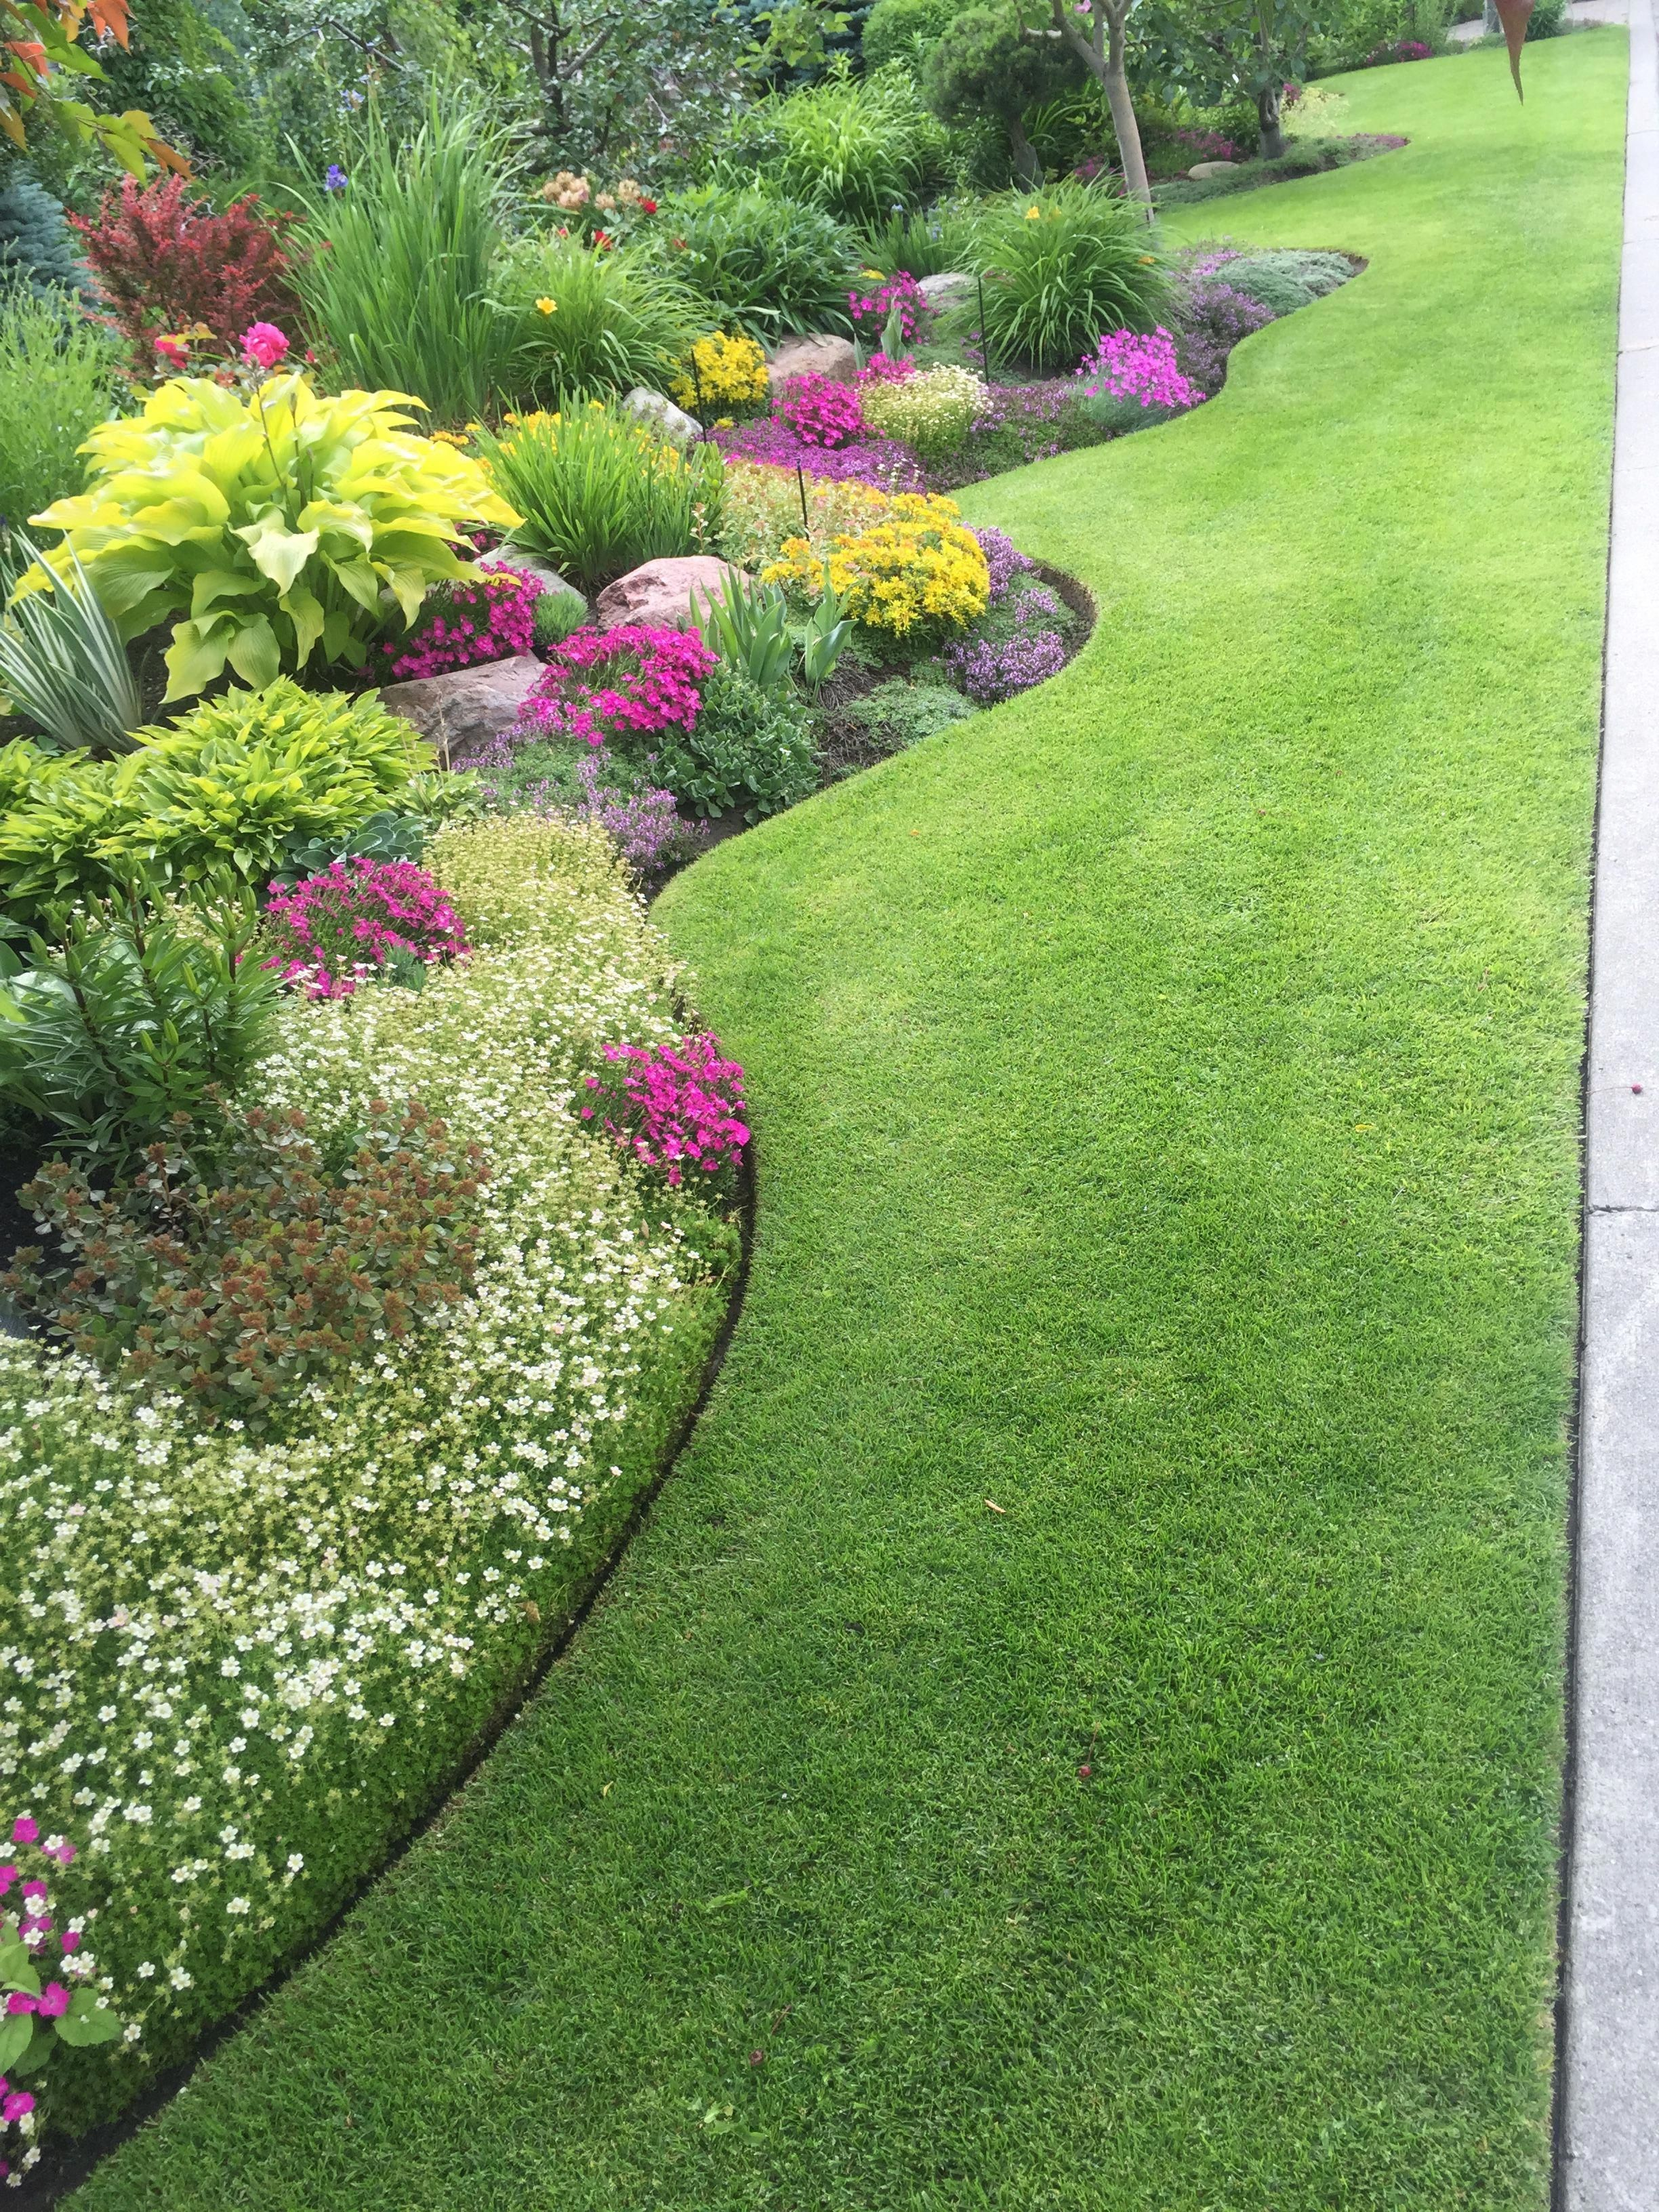 I Love The Perfect Edging Gardeninglayout The Farmer S Garden Is Considered The Epitome Of In 2020 Front Yard Landscaping Design Yard Landscaping Garden Design